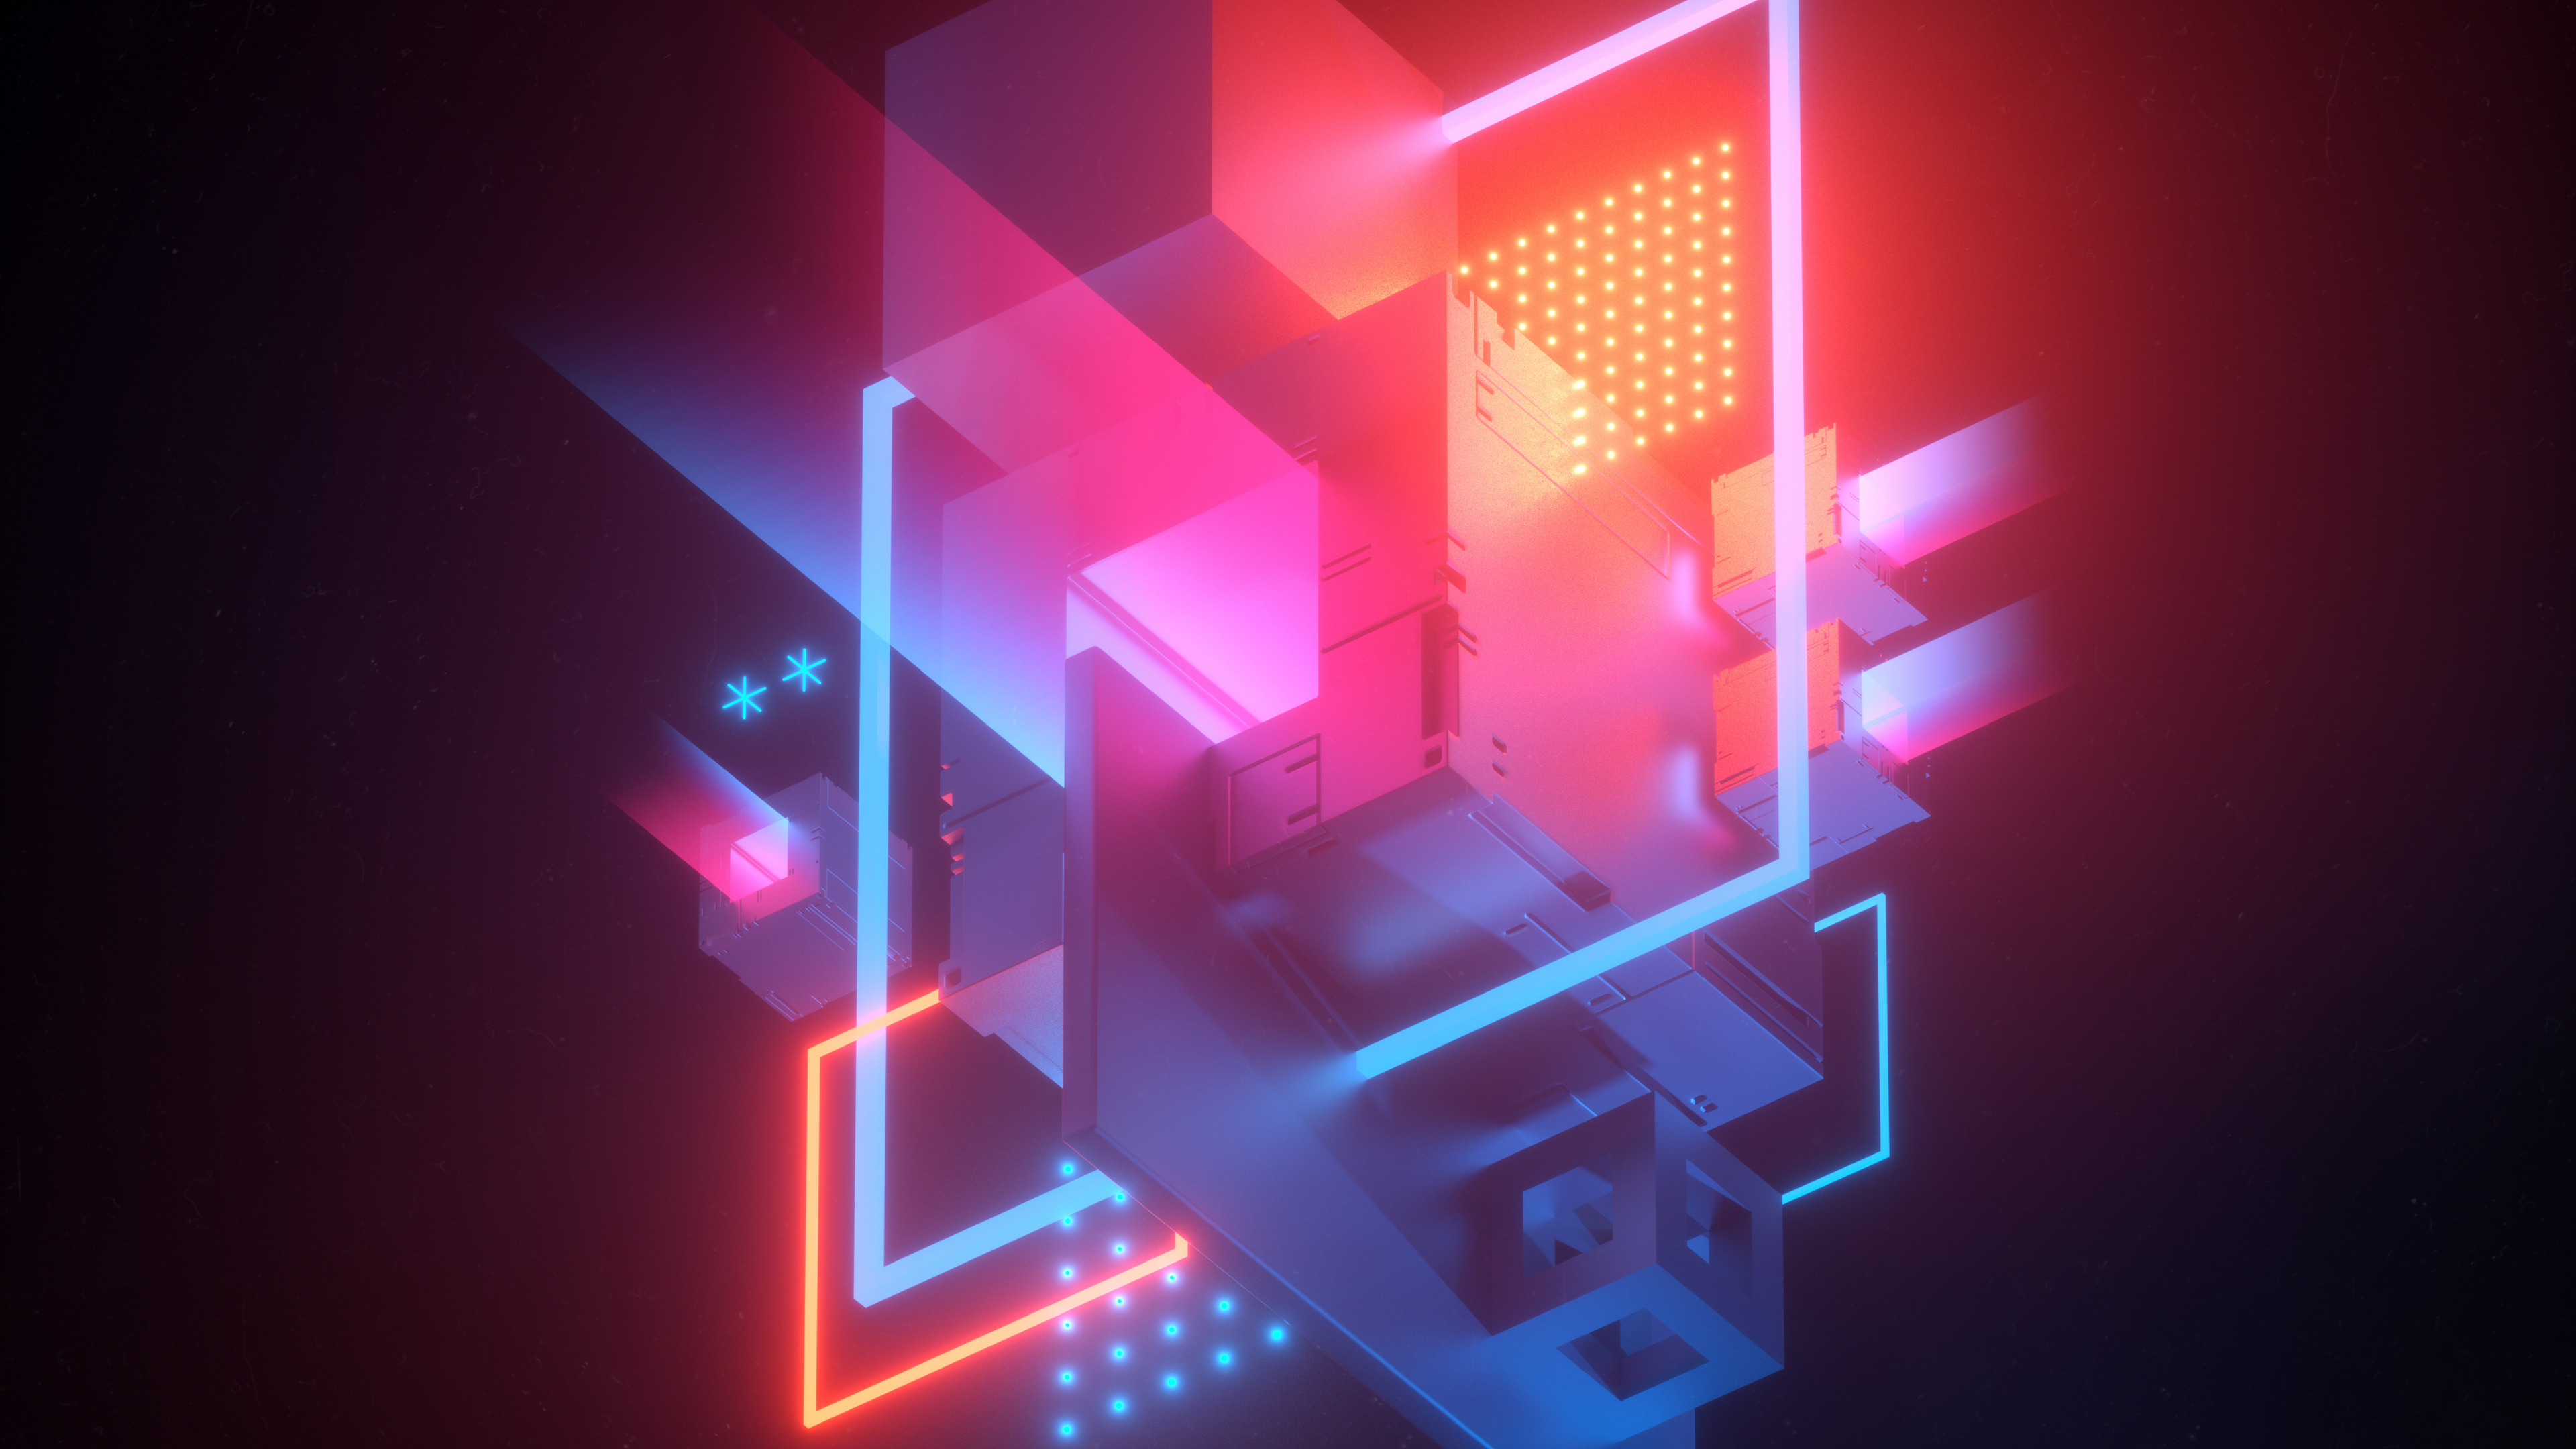 abstract conflict 4k 1546278007 - Abstract Conflict 4k - hd-wallpapers, digital art wallpapers, behance wallpapers, abstract wallpapers, 4k-wallpapers